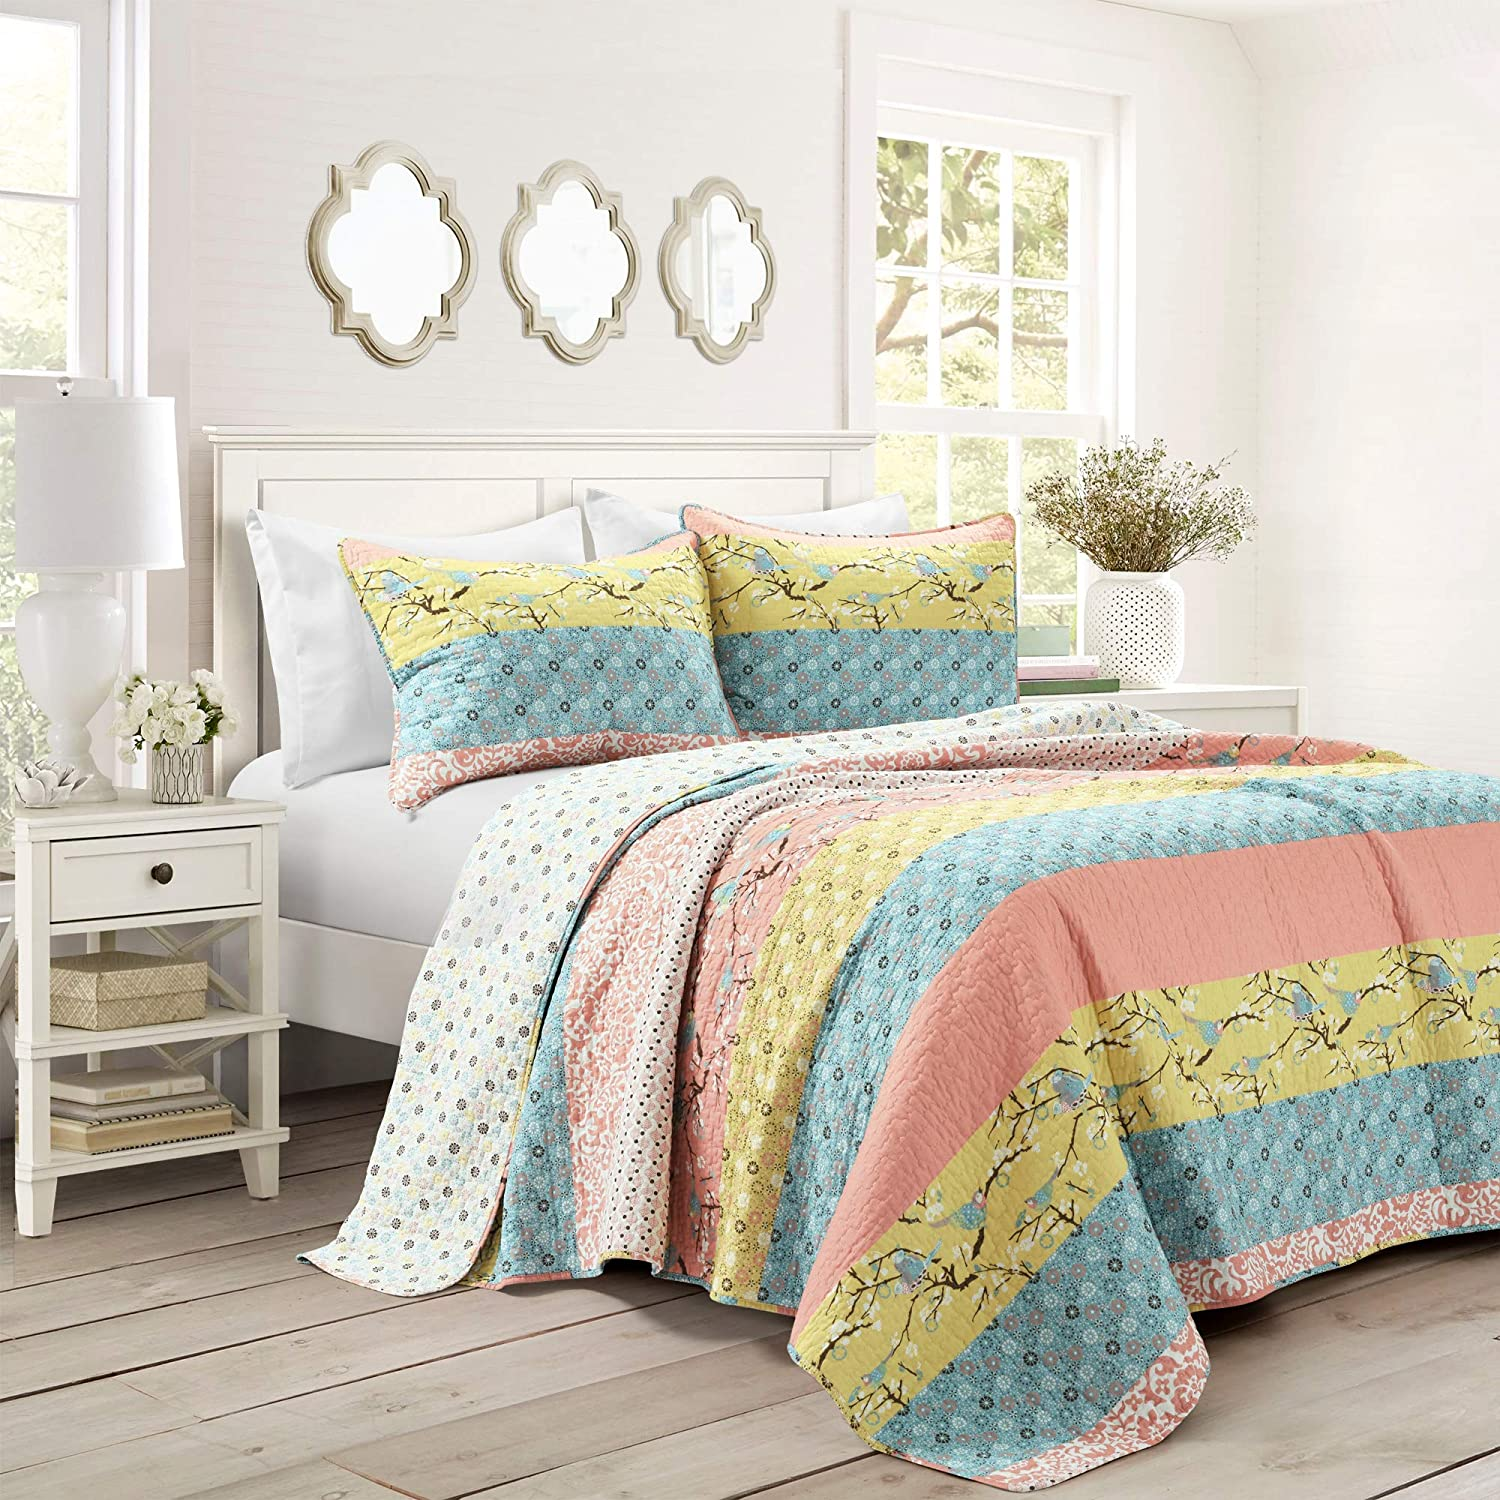 Lush Decor Royal Empire Quilt Striped Pattern Reversible 3 Piece Bedding Set, King, Blue and Coral